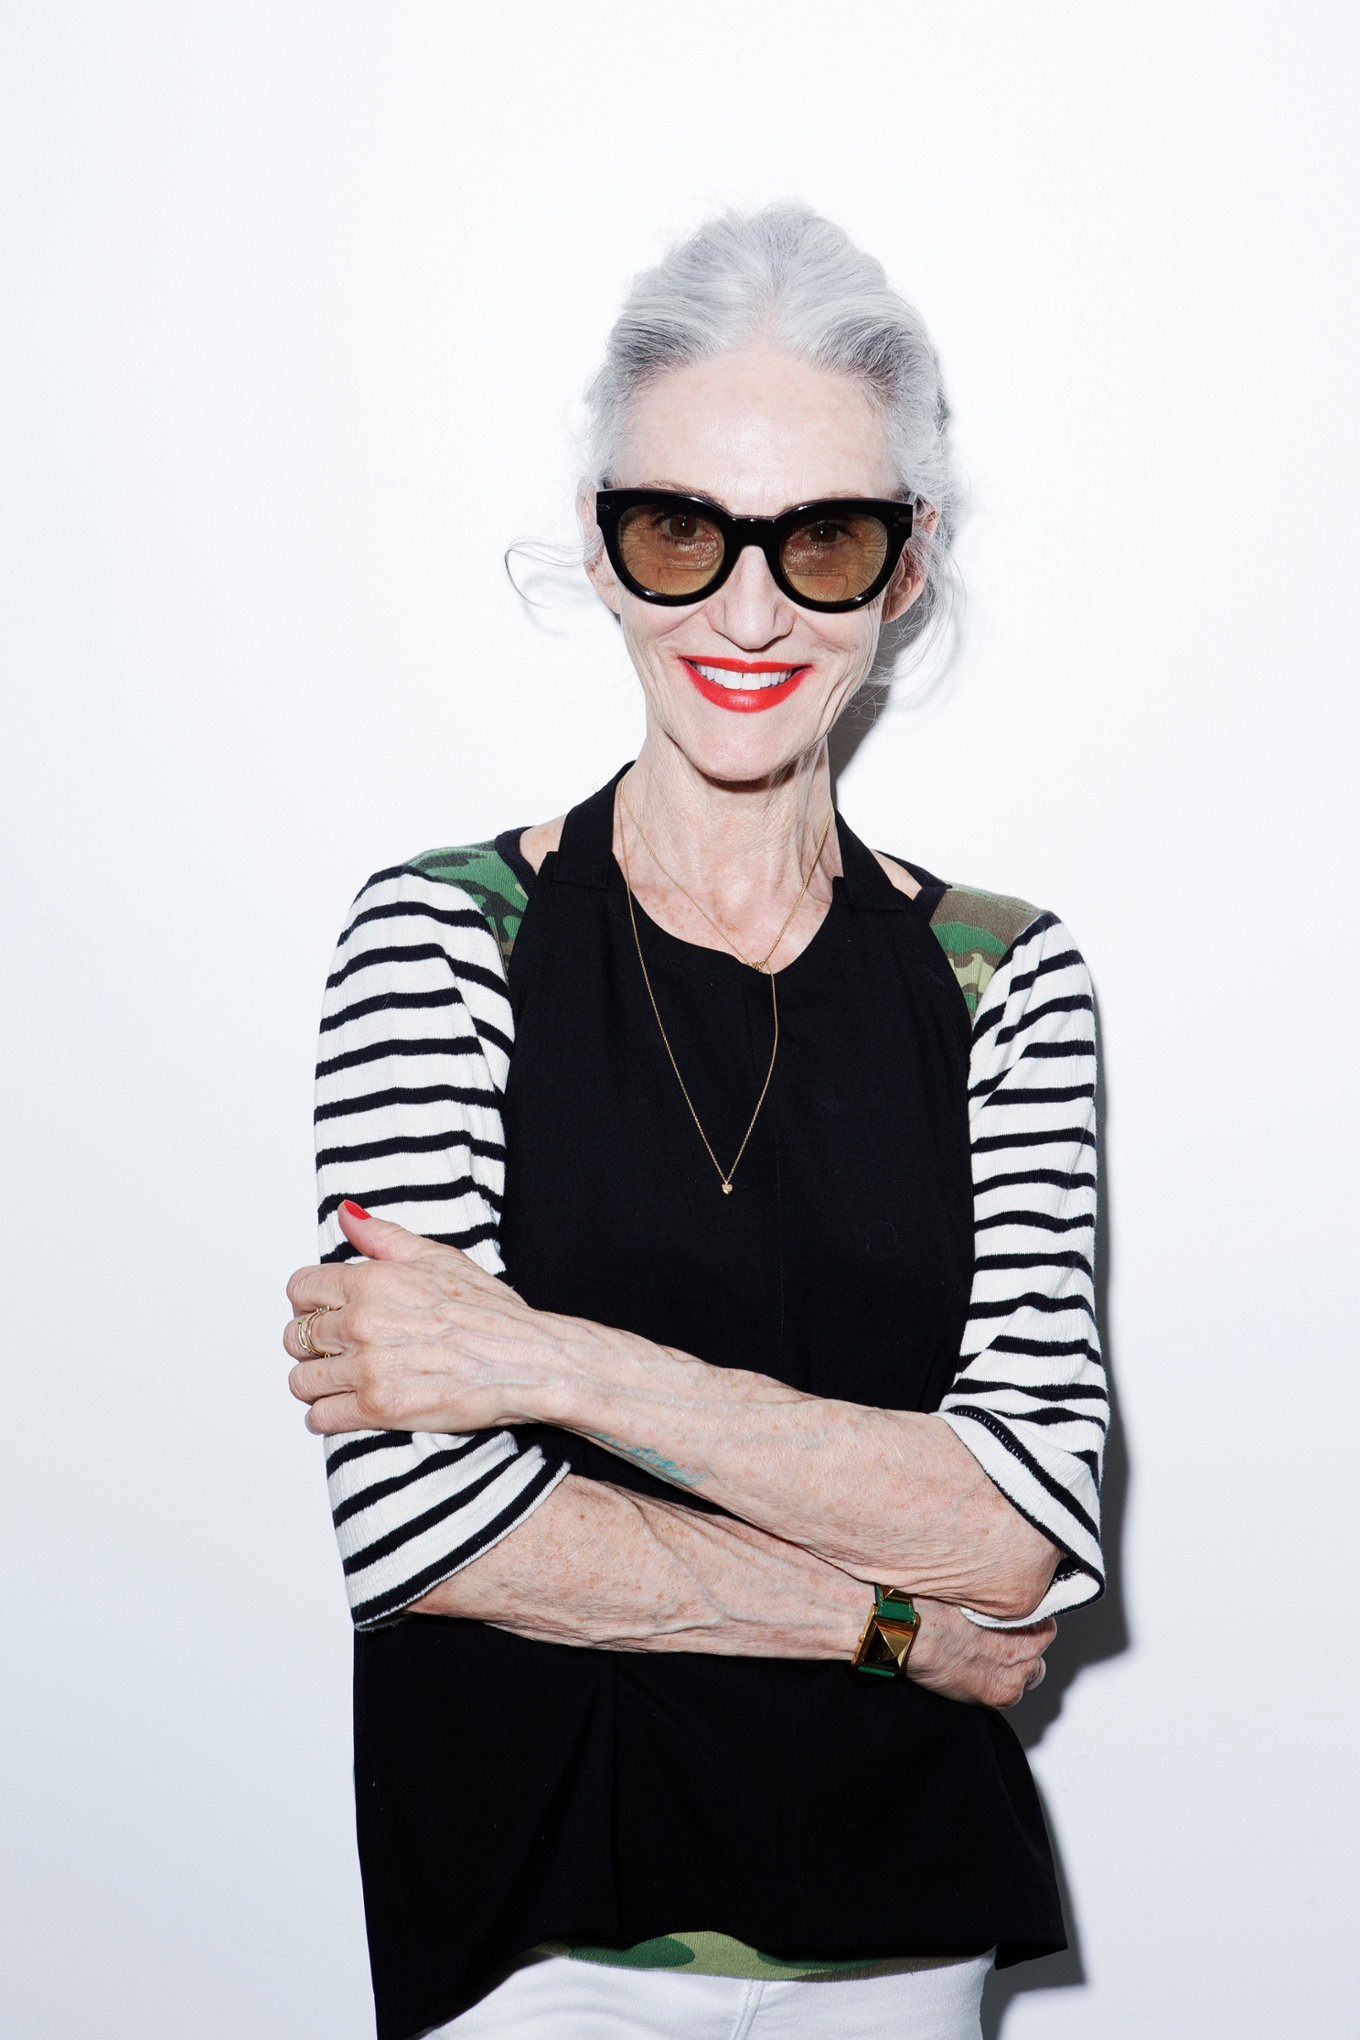 19 May 2013 --- Linda Rodin --- Image by © Kristiina Wilson/Corbis Outline